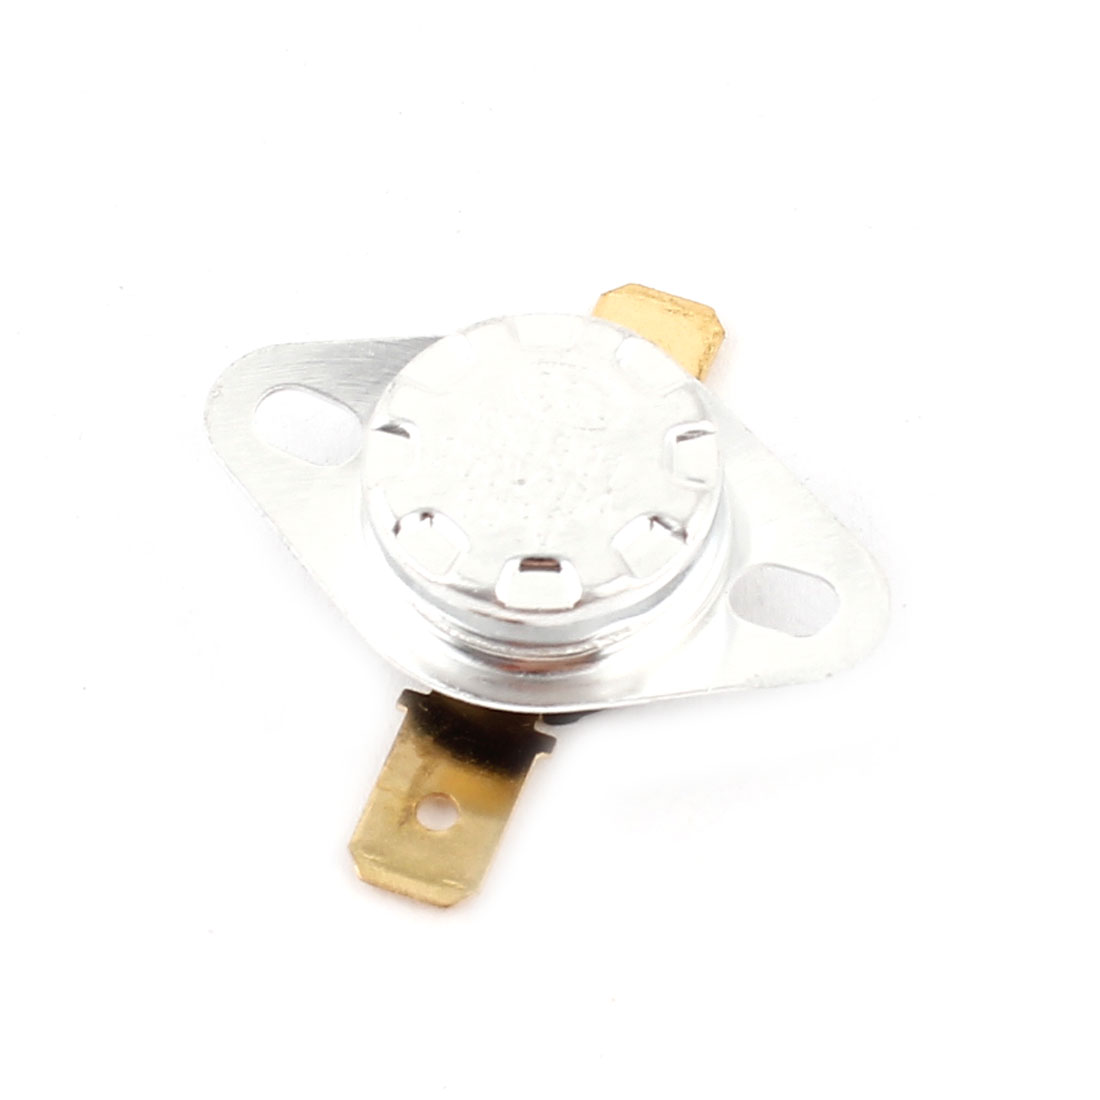 KSD301 AC 250V 10A 65C NC Normally Closed Temperature Control Switch Thermal Thermostat Sensor